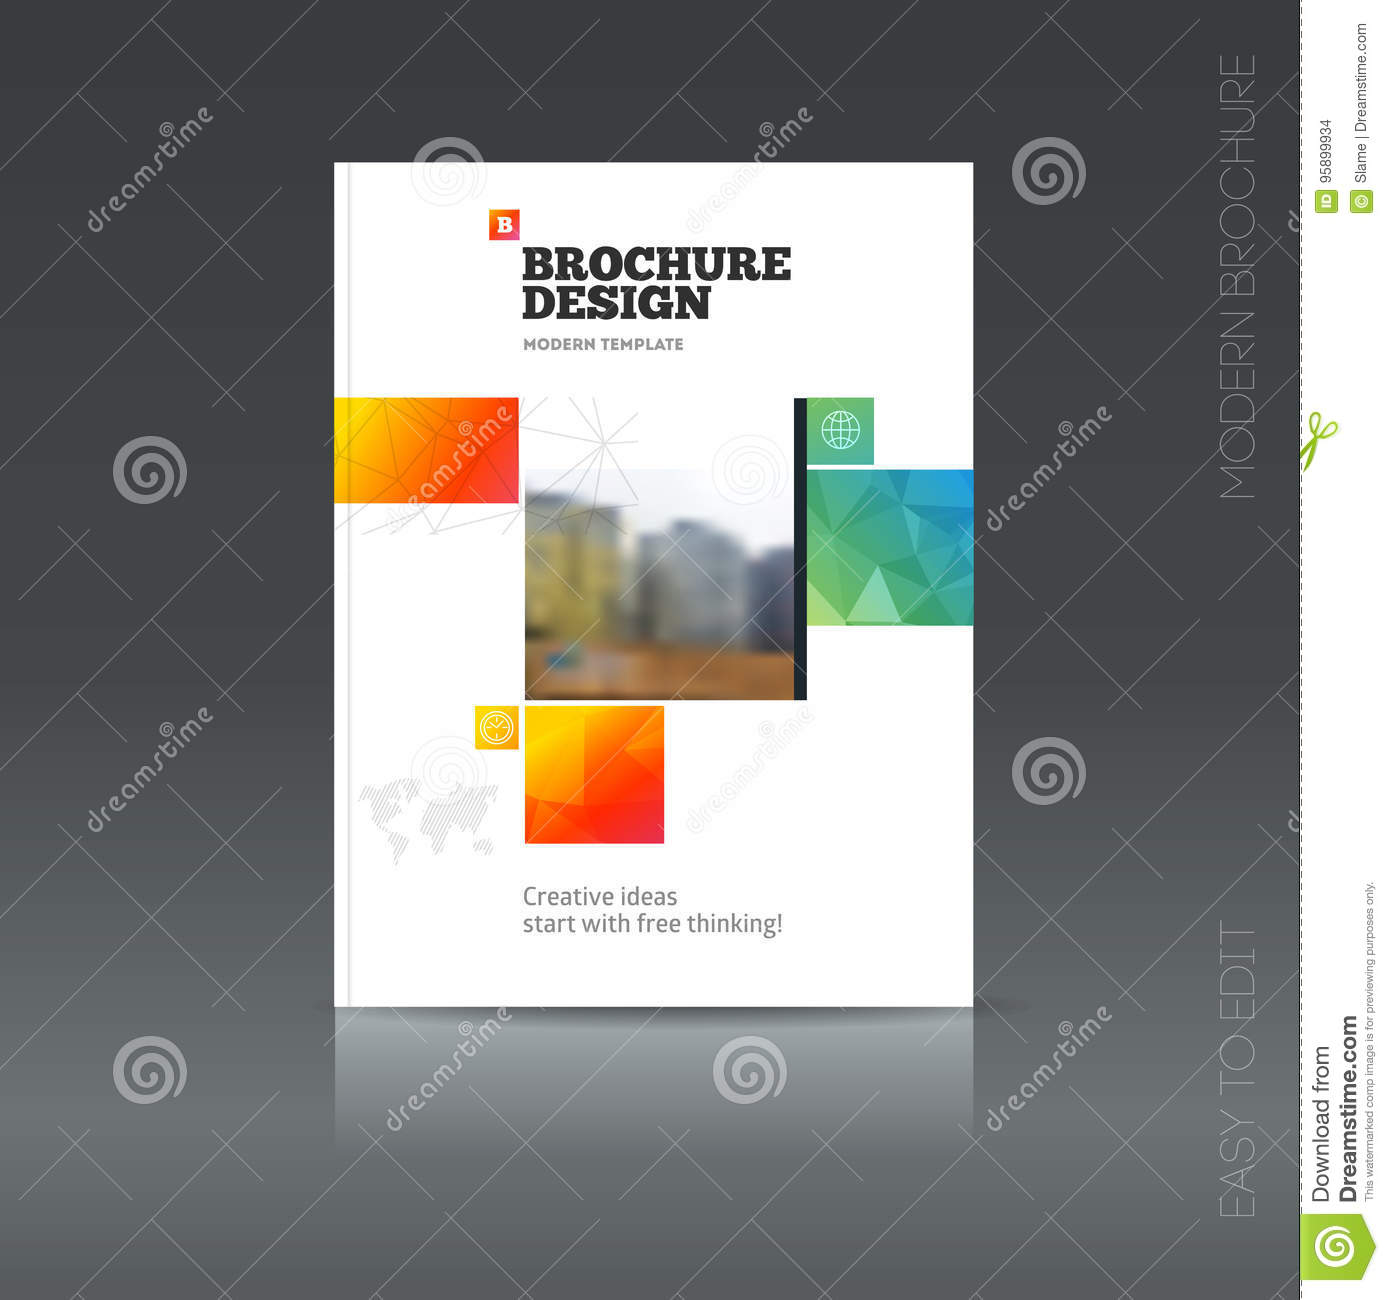 How To Make A Book Cover Using Powerpoint ~ Simple style brochure flyer promotion stock vector